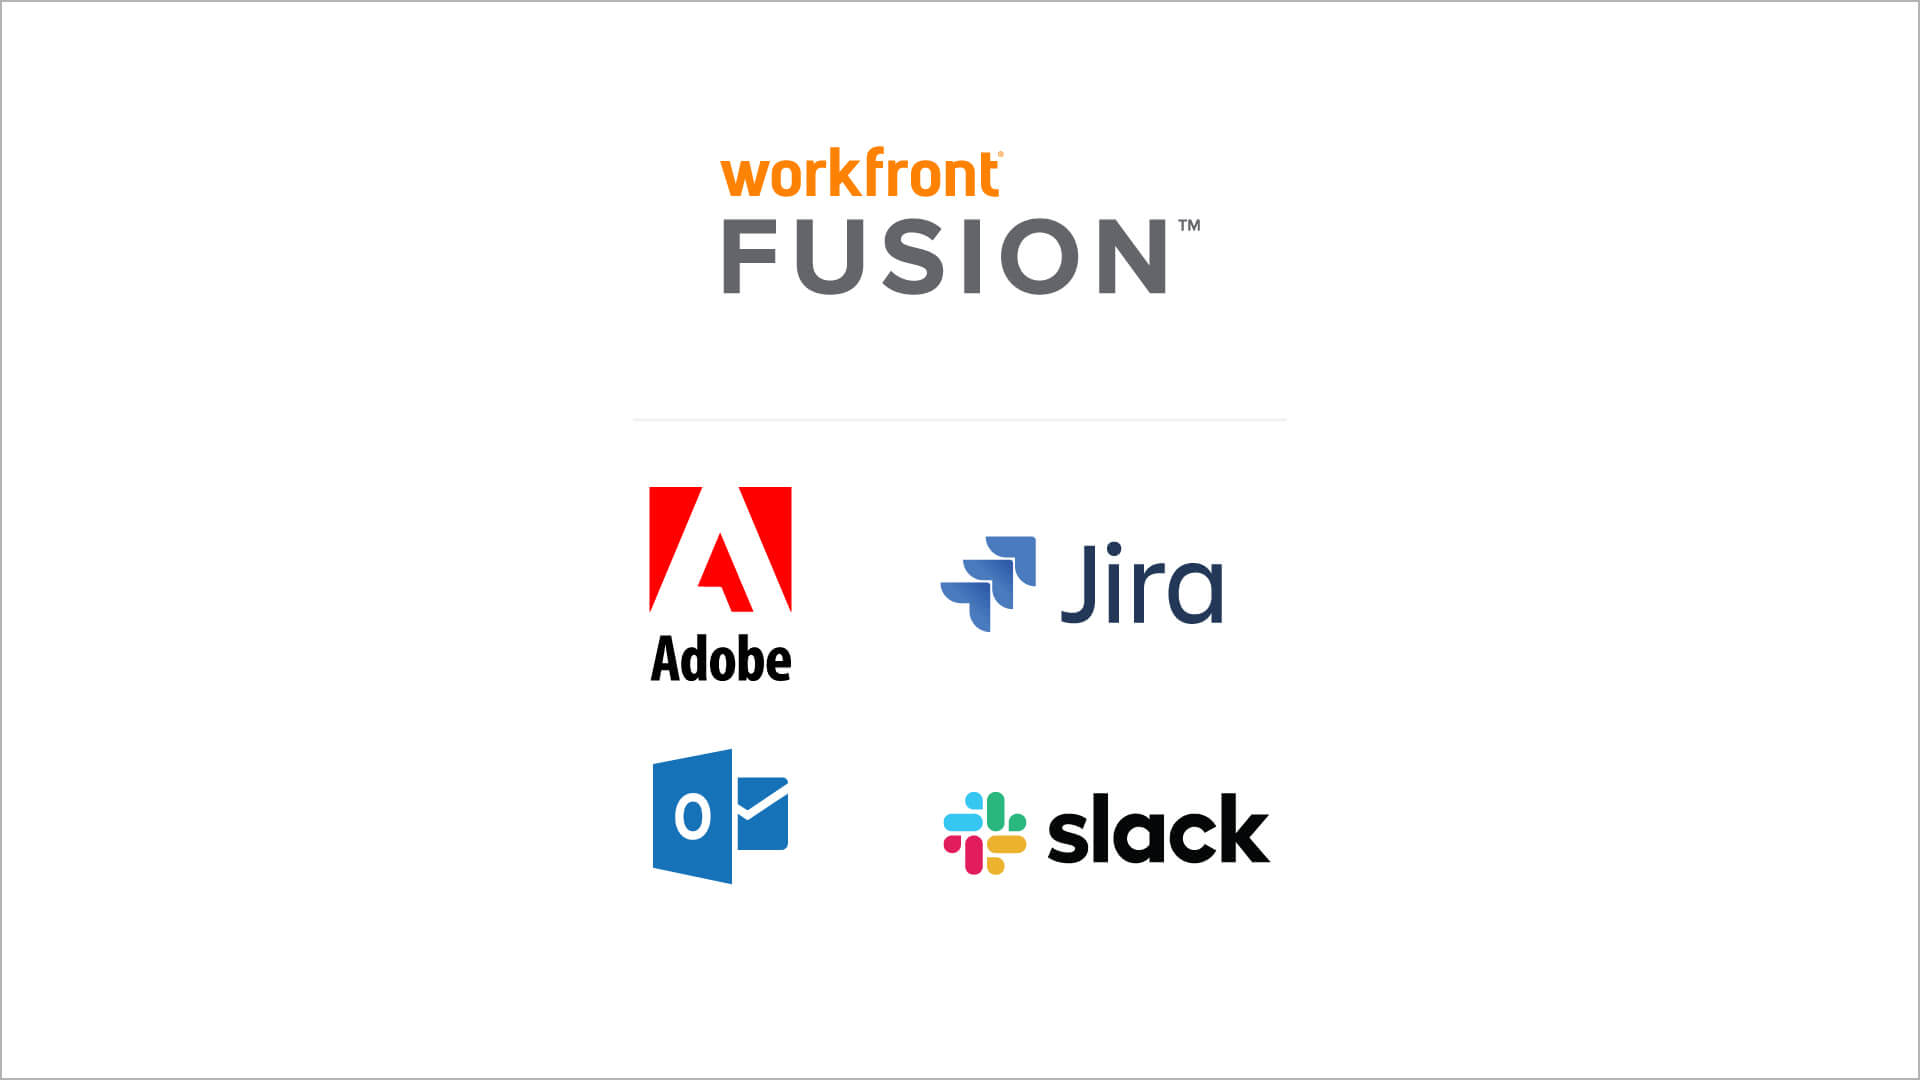 Adobe, Jira, Slack, MS outlook logos